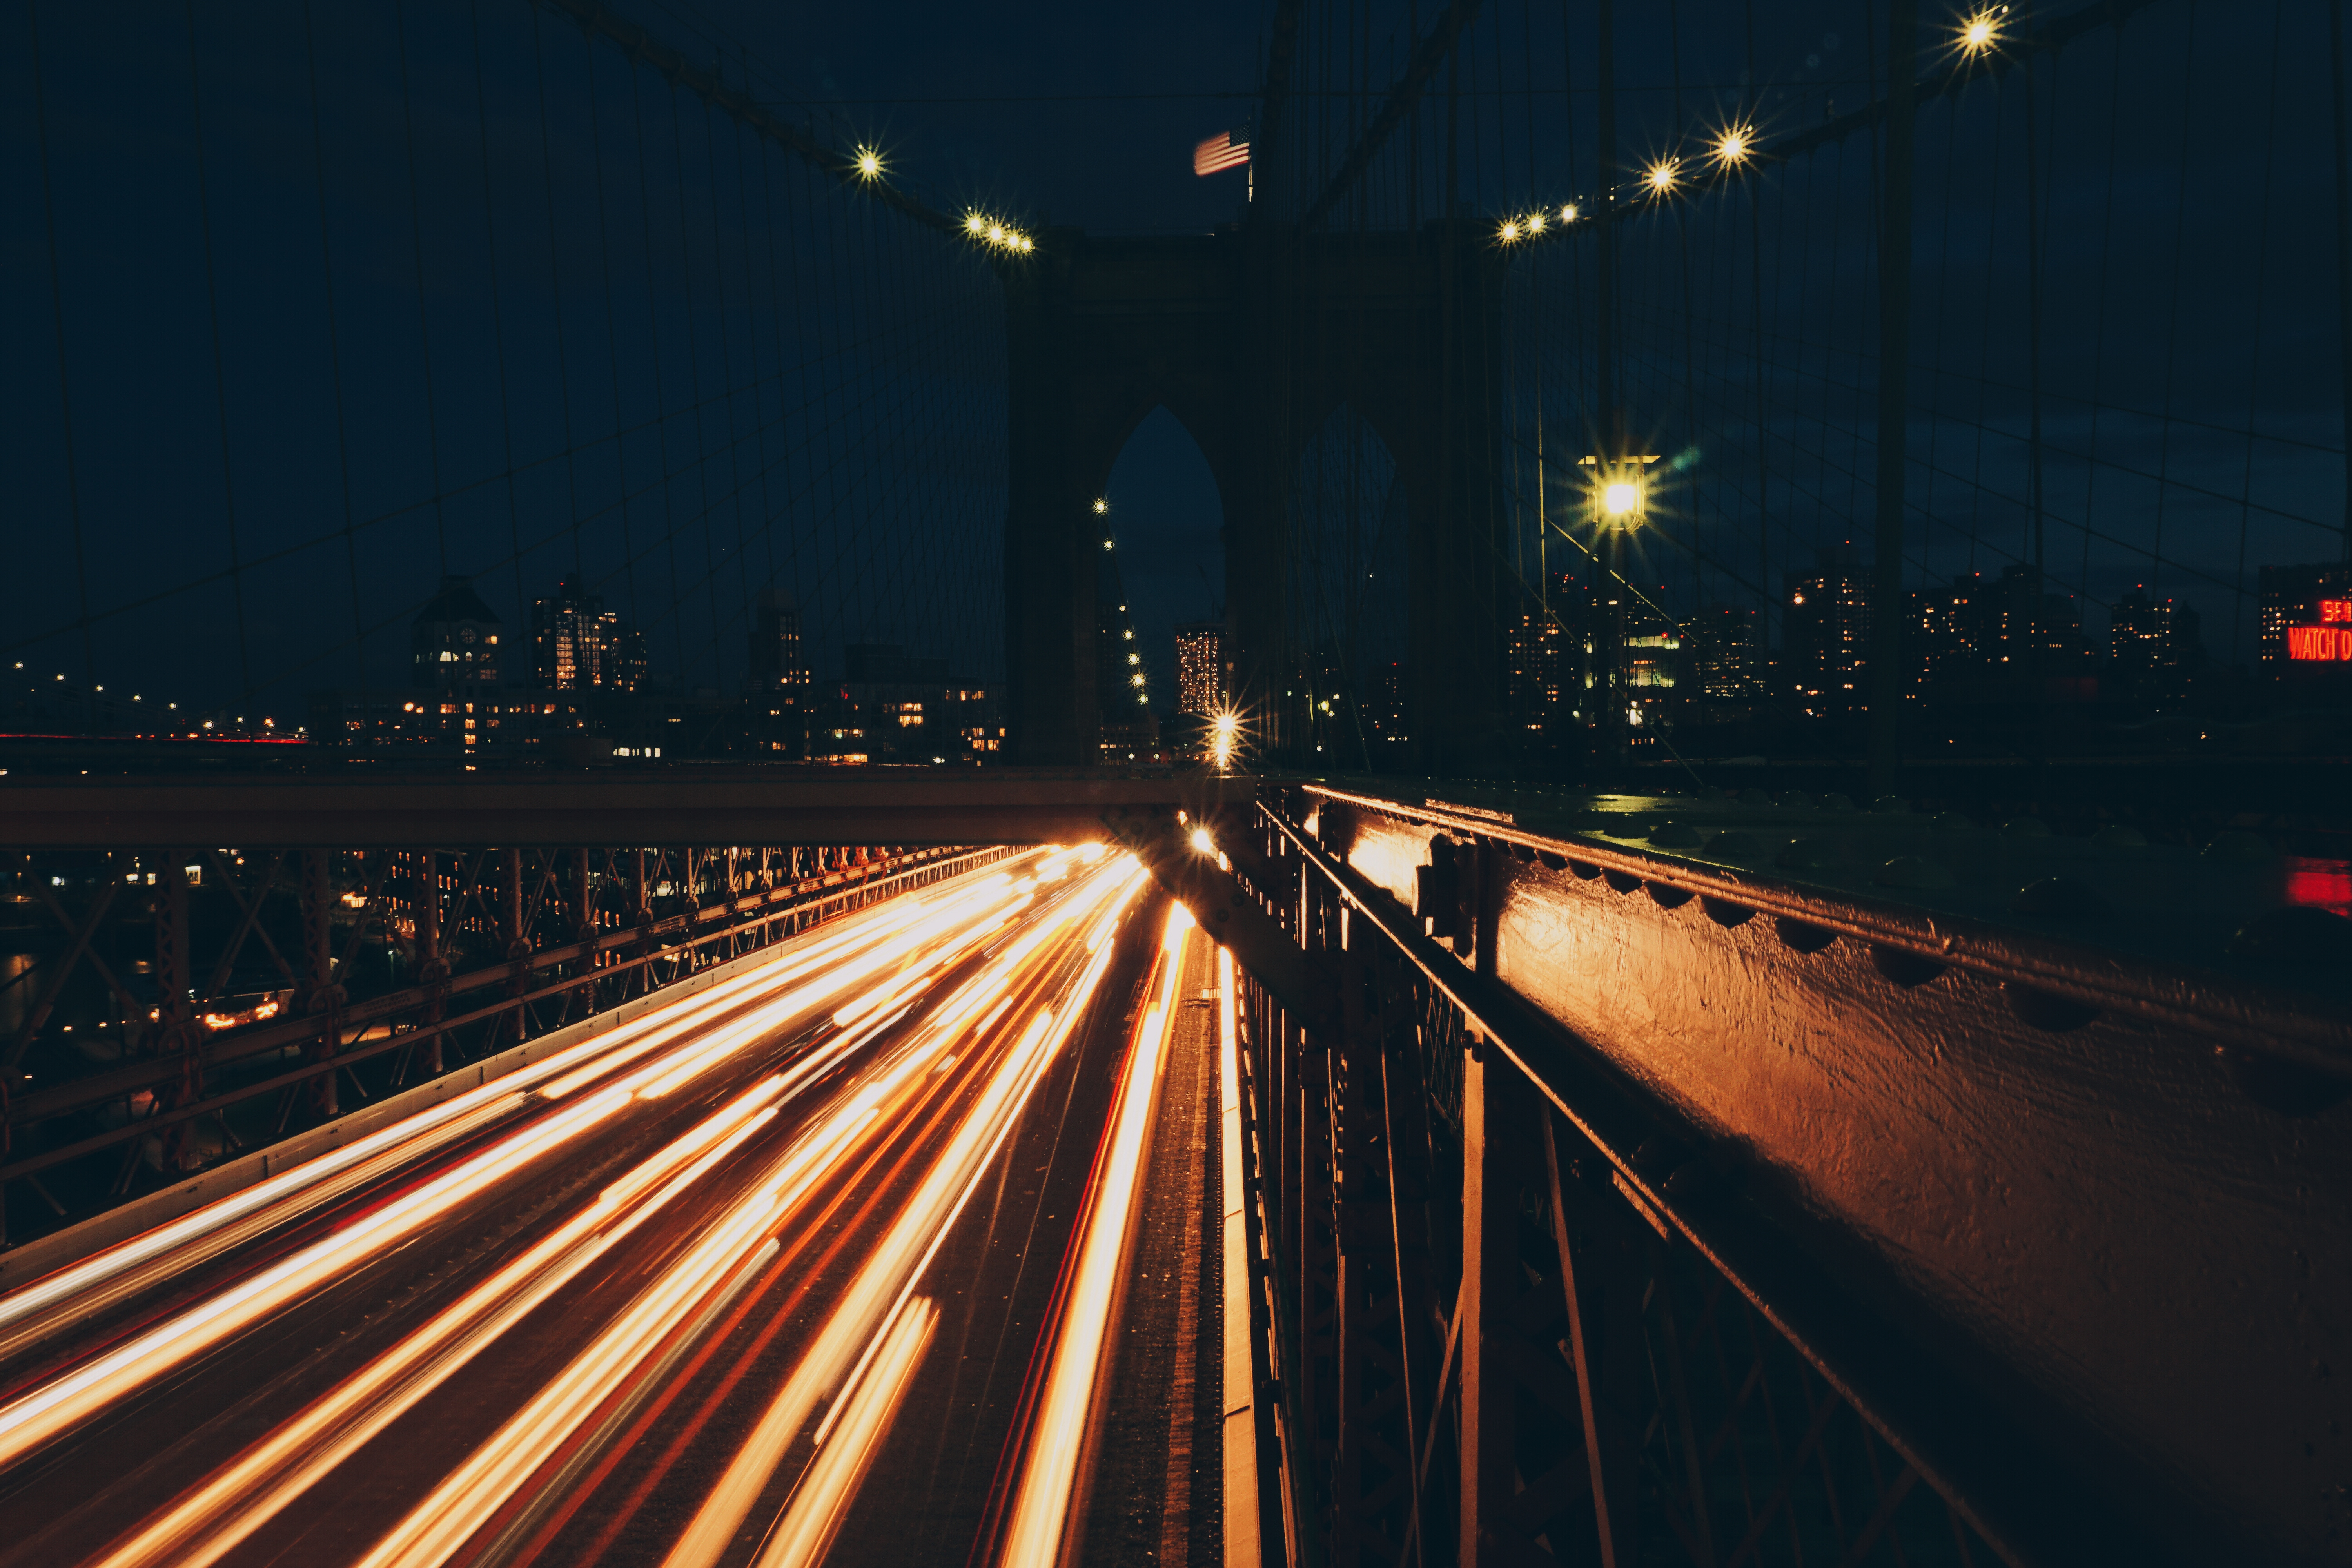 Brooklyn Bridge Wallpaper Black And White Light Trails On Road At Night 183 Free Stock Photo